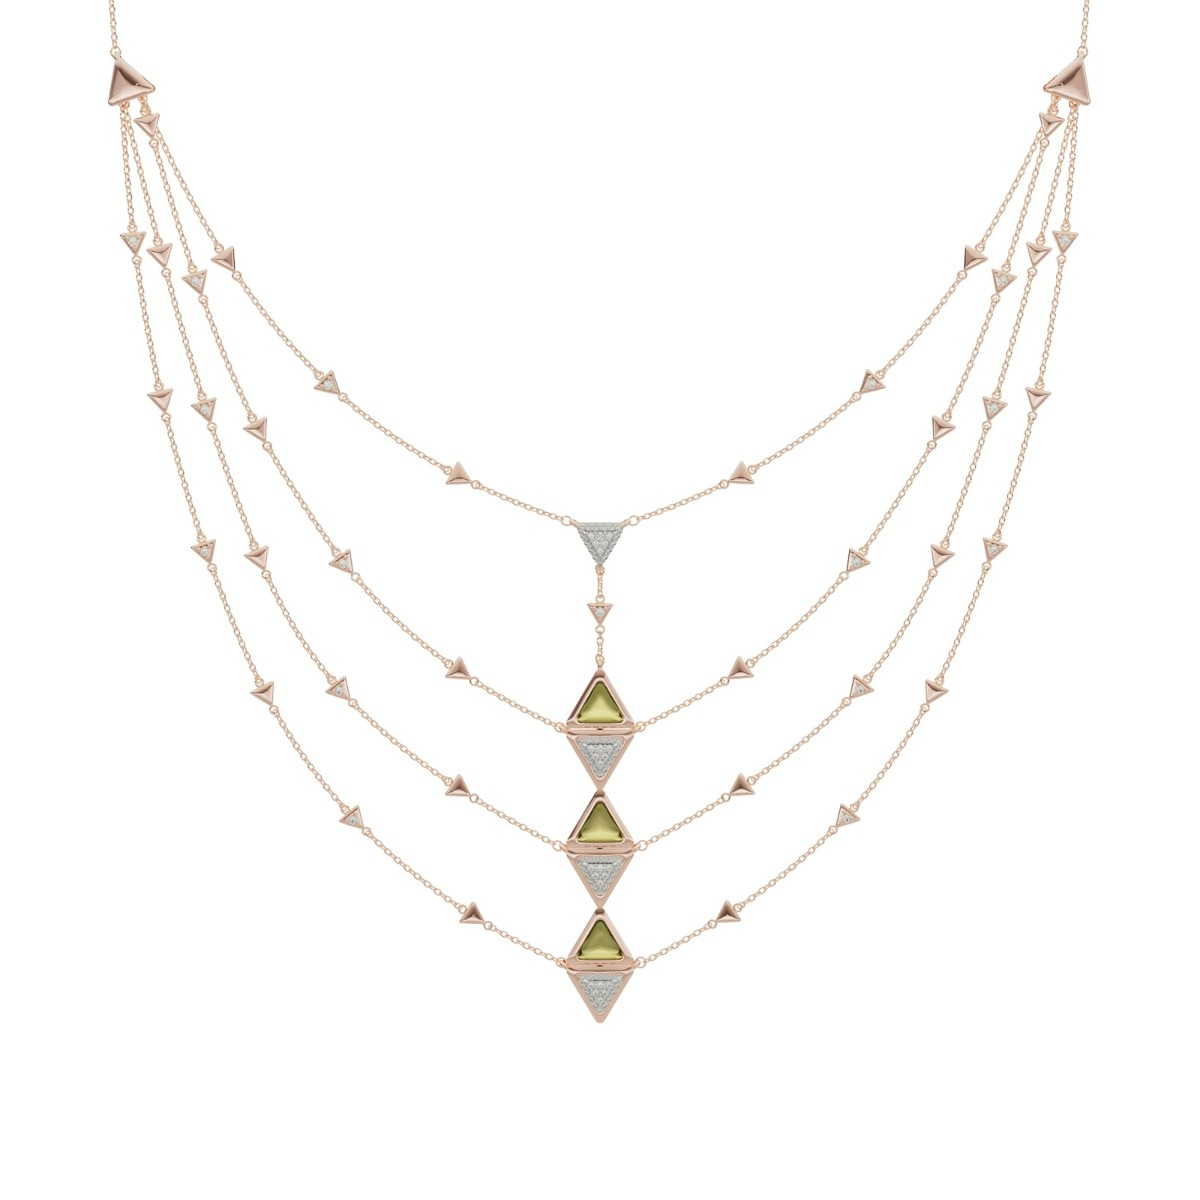 Diamond and Tourmaline Triangle Necklace - Mirror Collection